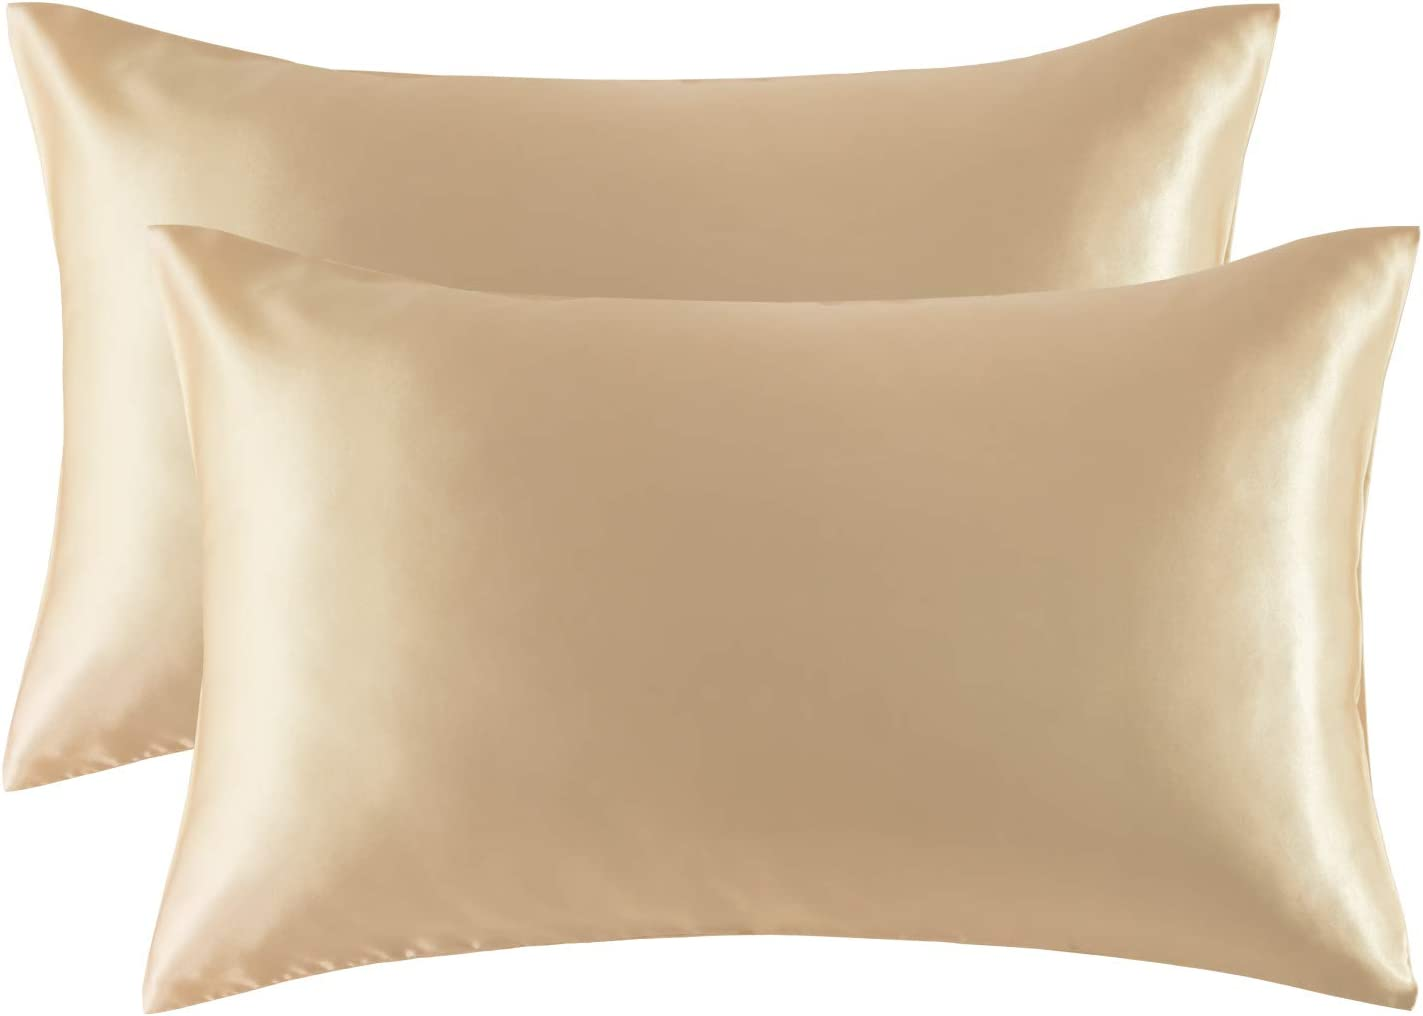 Bedsure Satin Pillowcase for Hair and Skin, 2-Pack - Standard Size (20x26 inches) Pillow Cases - Satin Pillow Covers with Envelope Closure, Champagne (Gold)